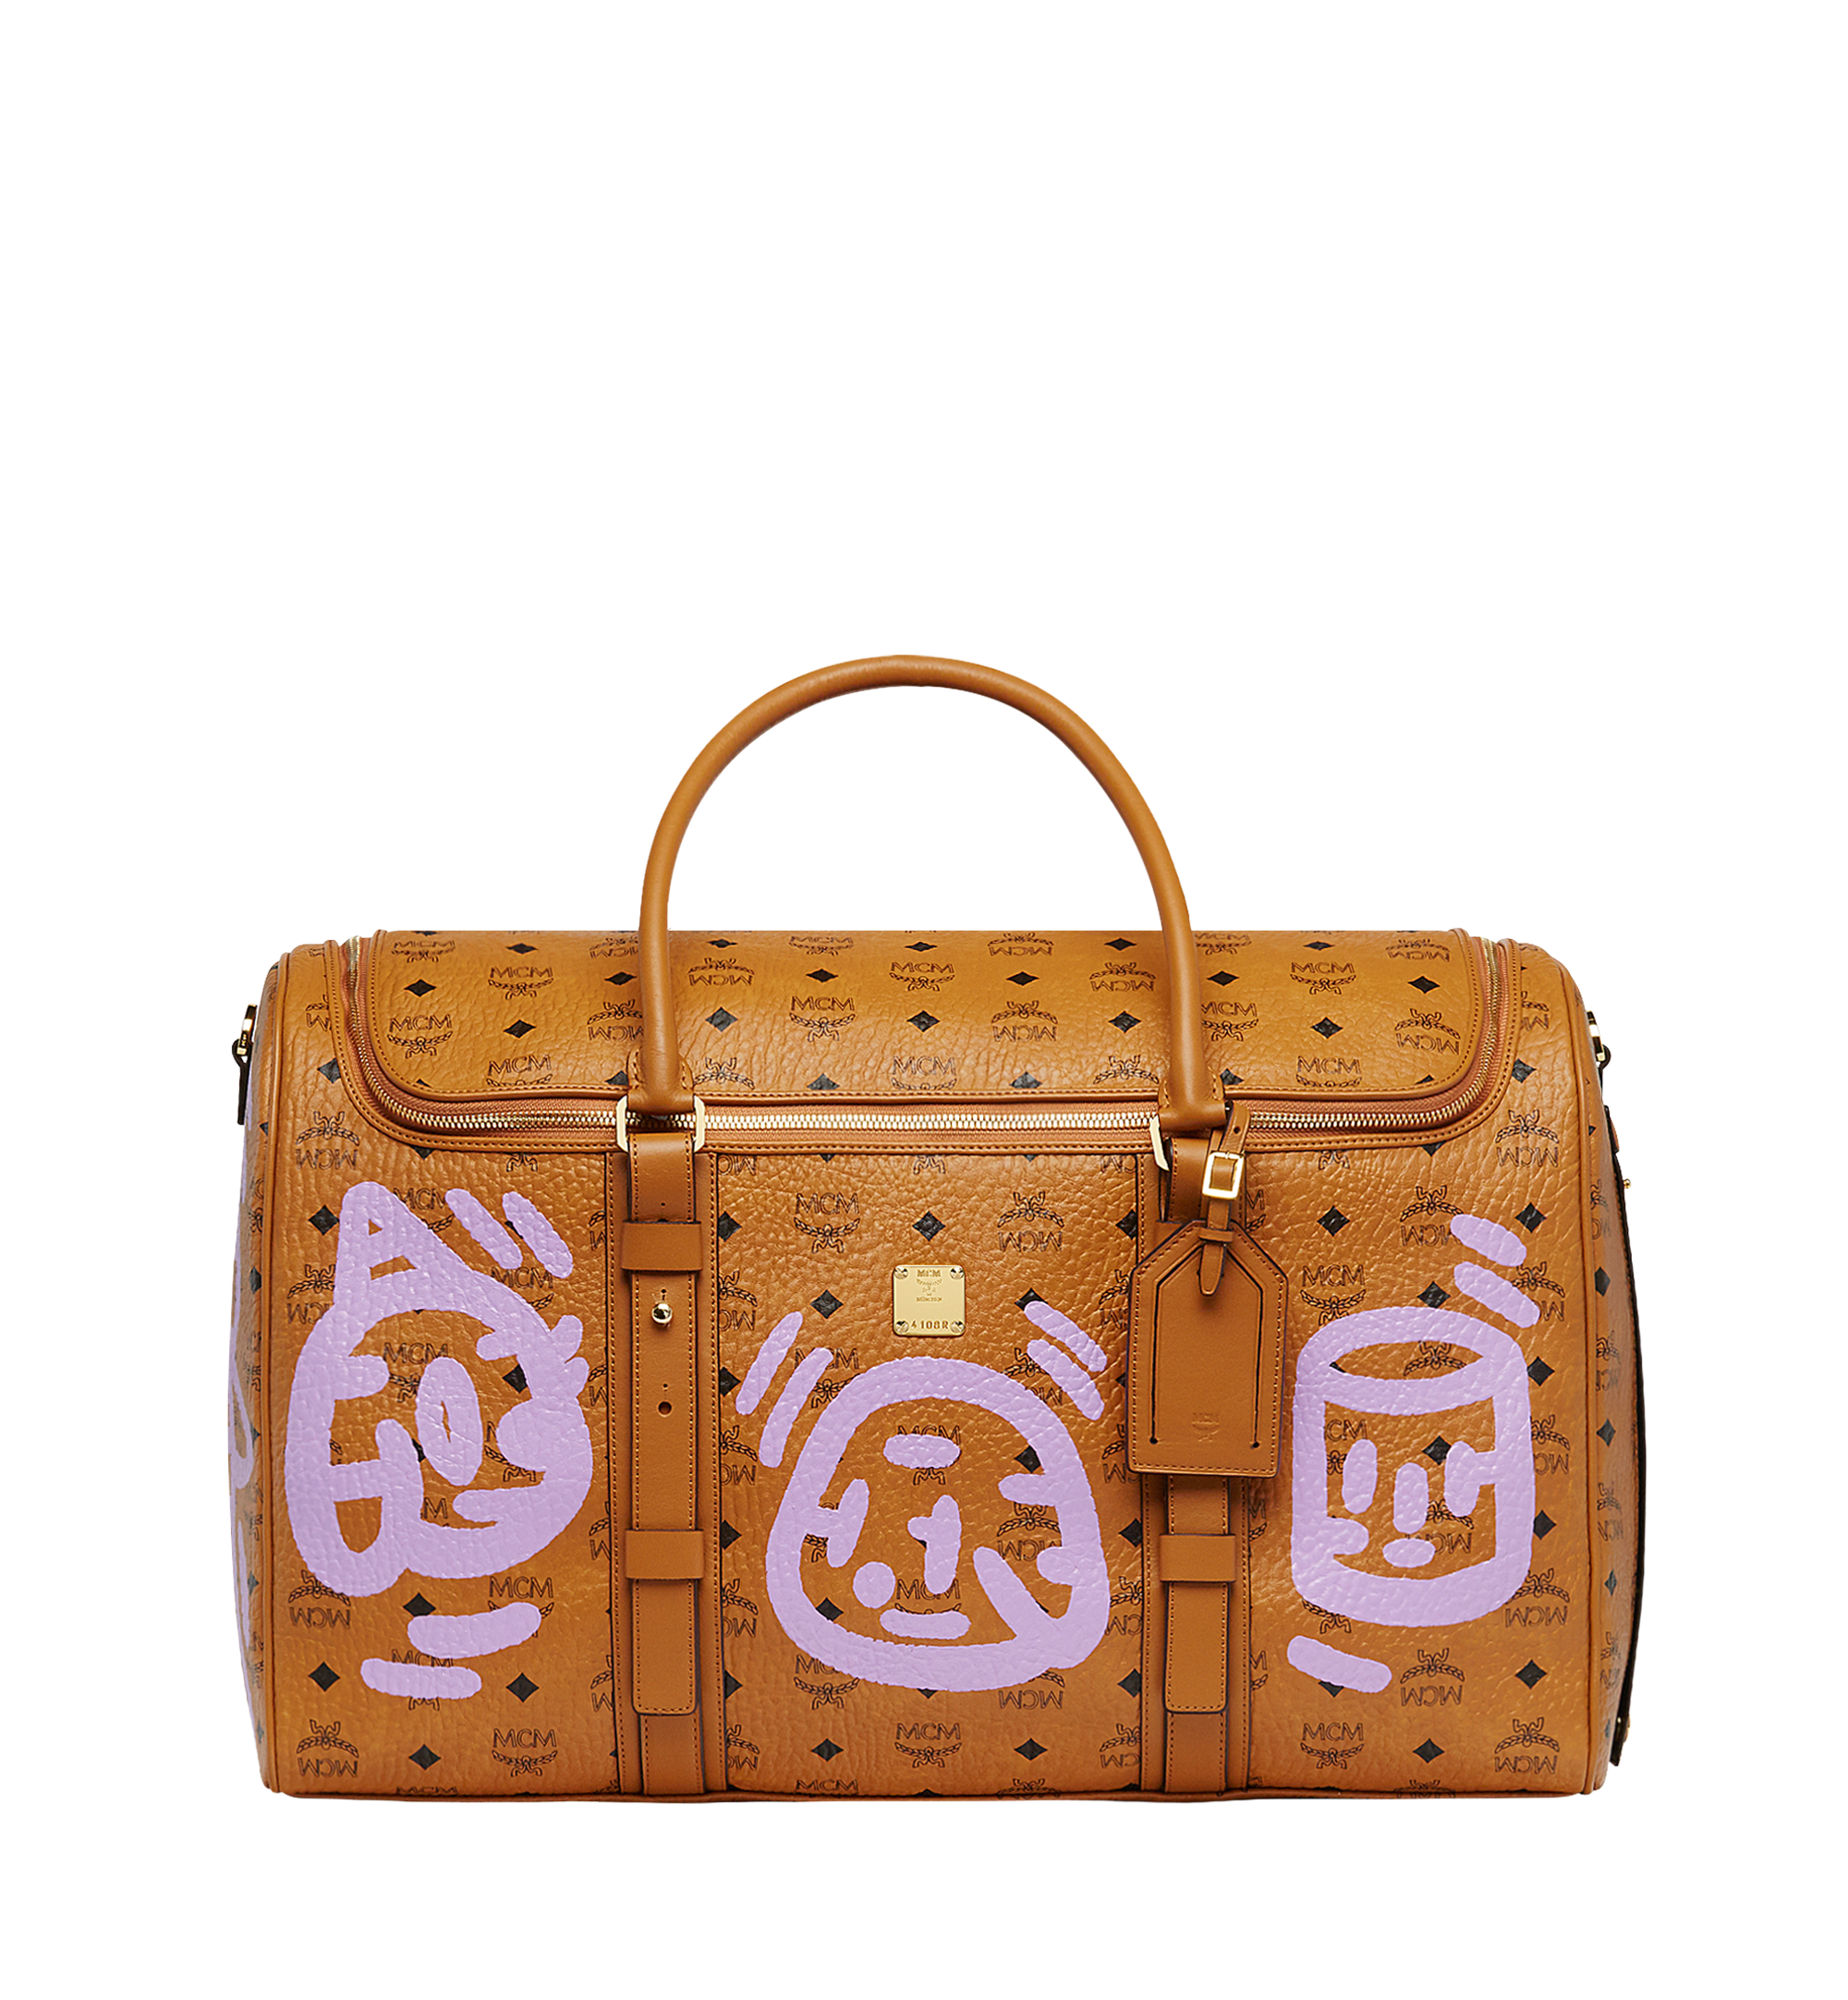 MCM_X_Eddie_Kang_Auction_Piece___Dog_Carrier_HQ_7.png